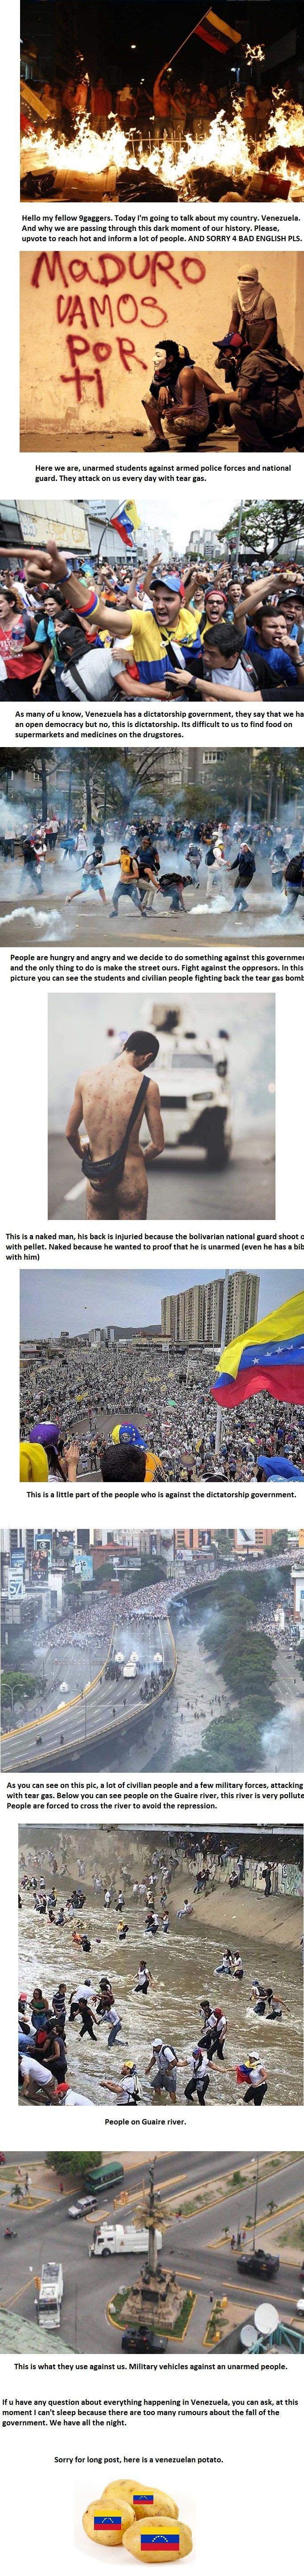 Venezuela in crisis, please upvote so we can inform other people about situation here in Venezuela. Thank you.